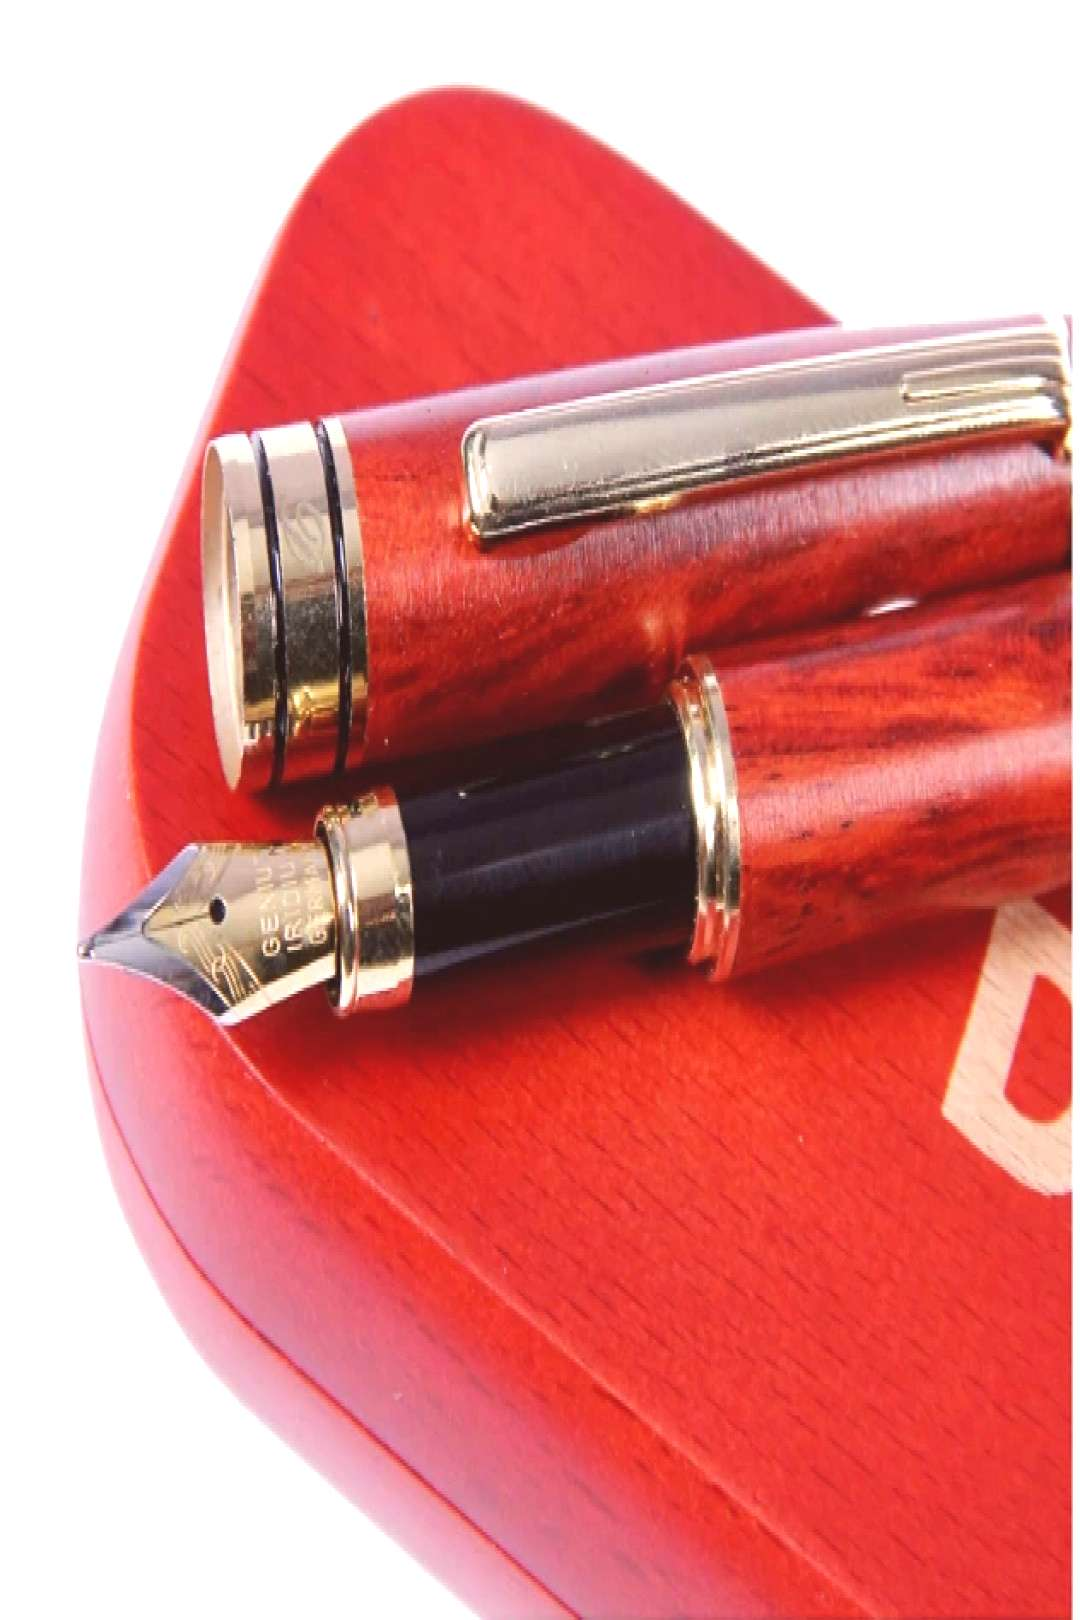 Dryden Luxury Rosewood Fountain Pen with Gift Case | 100% Handcrafted | Executive Fountain Pens Set